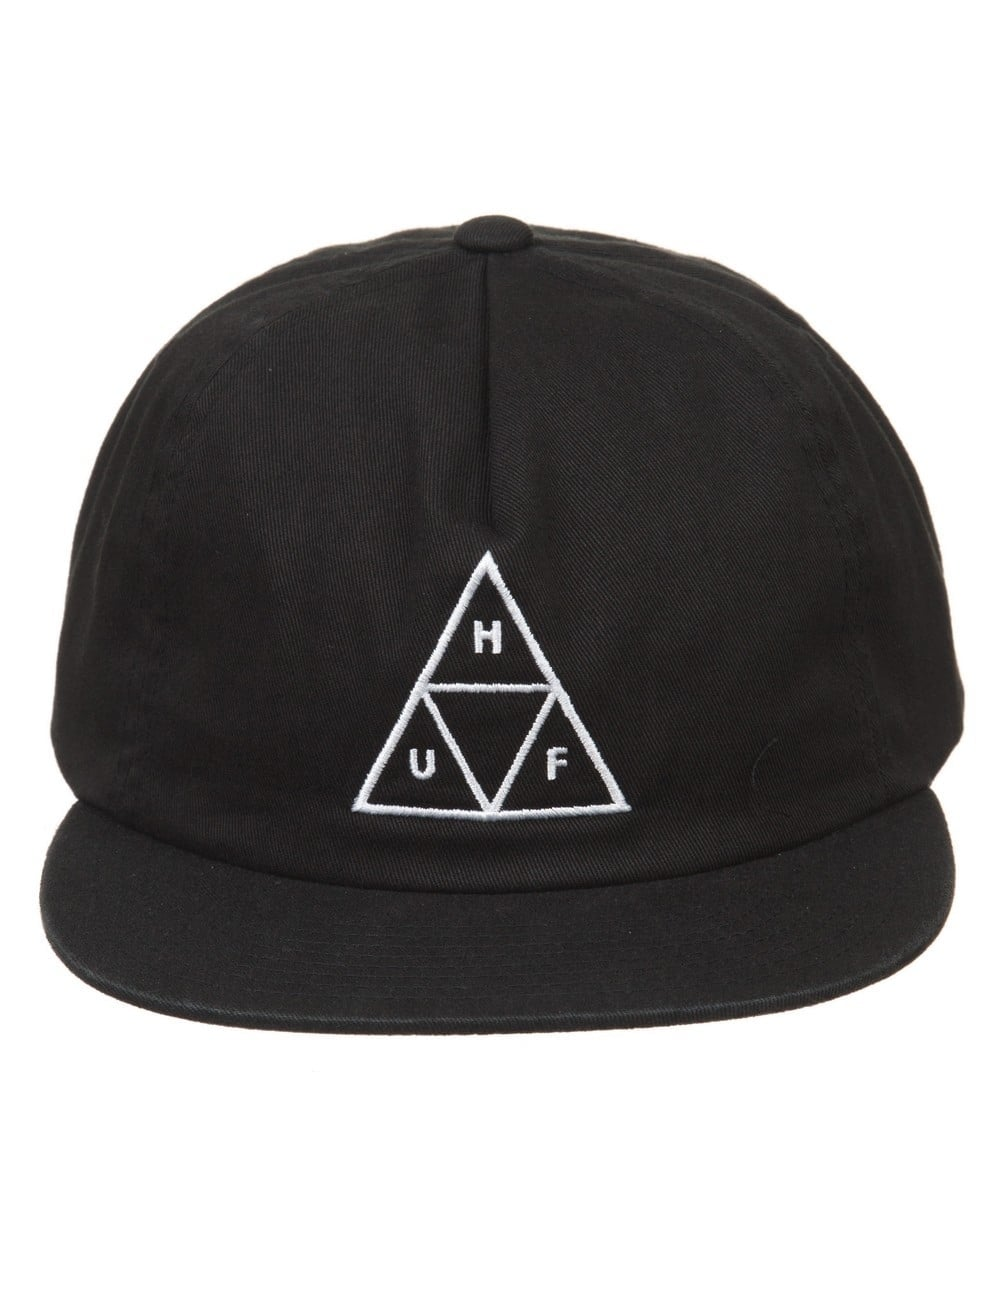 76fab595261 Huf Triple Triangle Snapback Hat - Black - Accessories from Fat ...